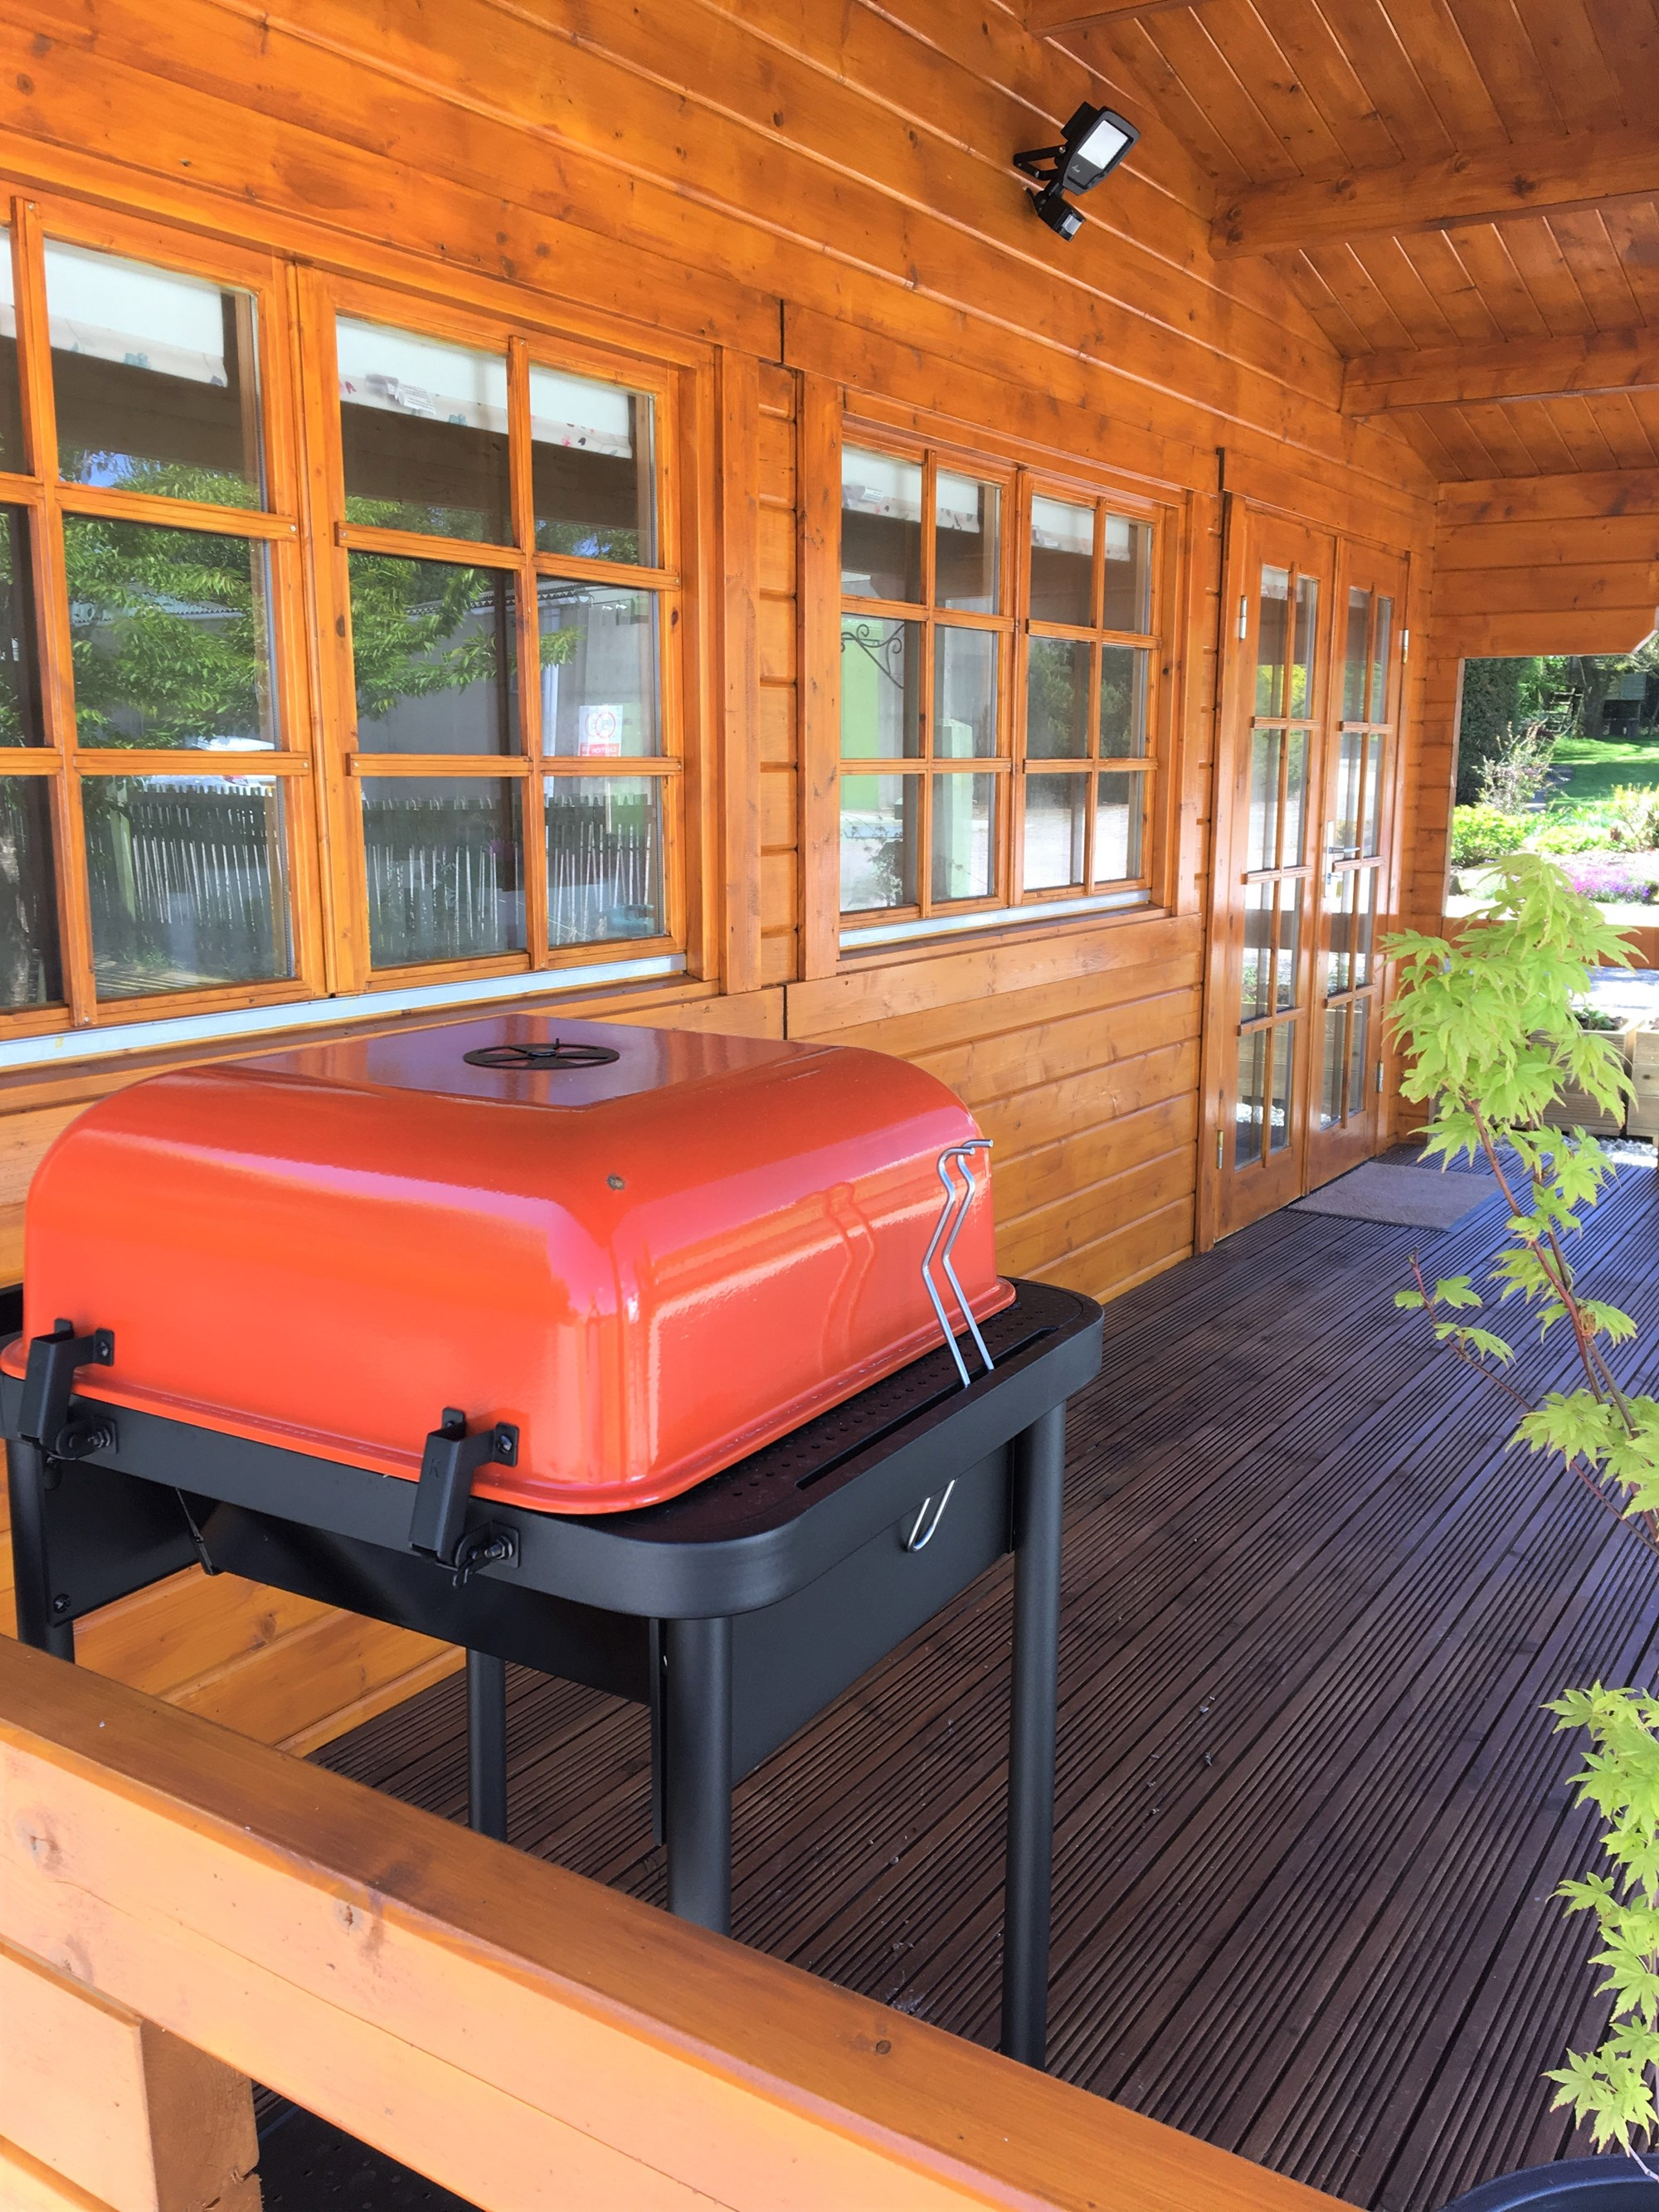 There is a barbeque and electric grill for outside use, and picnic tables